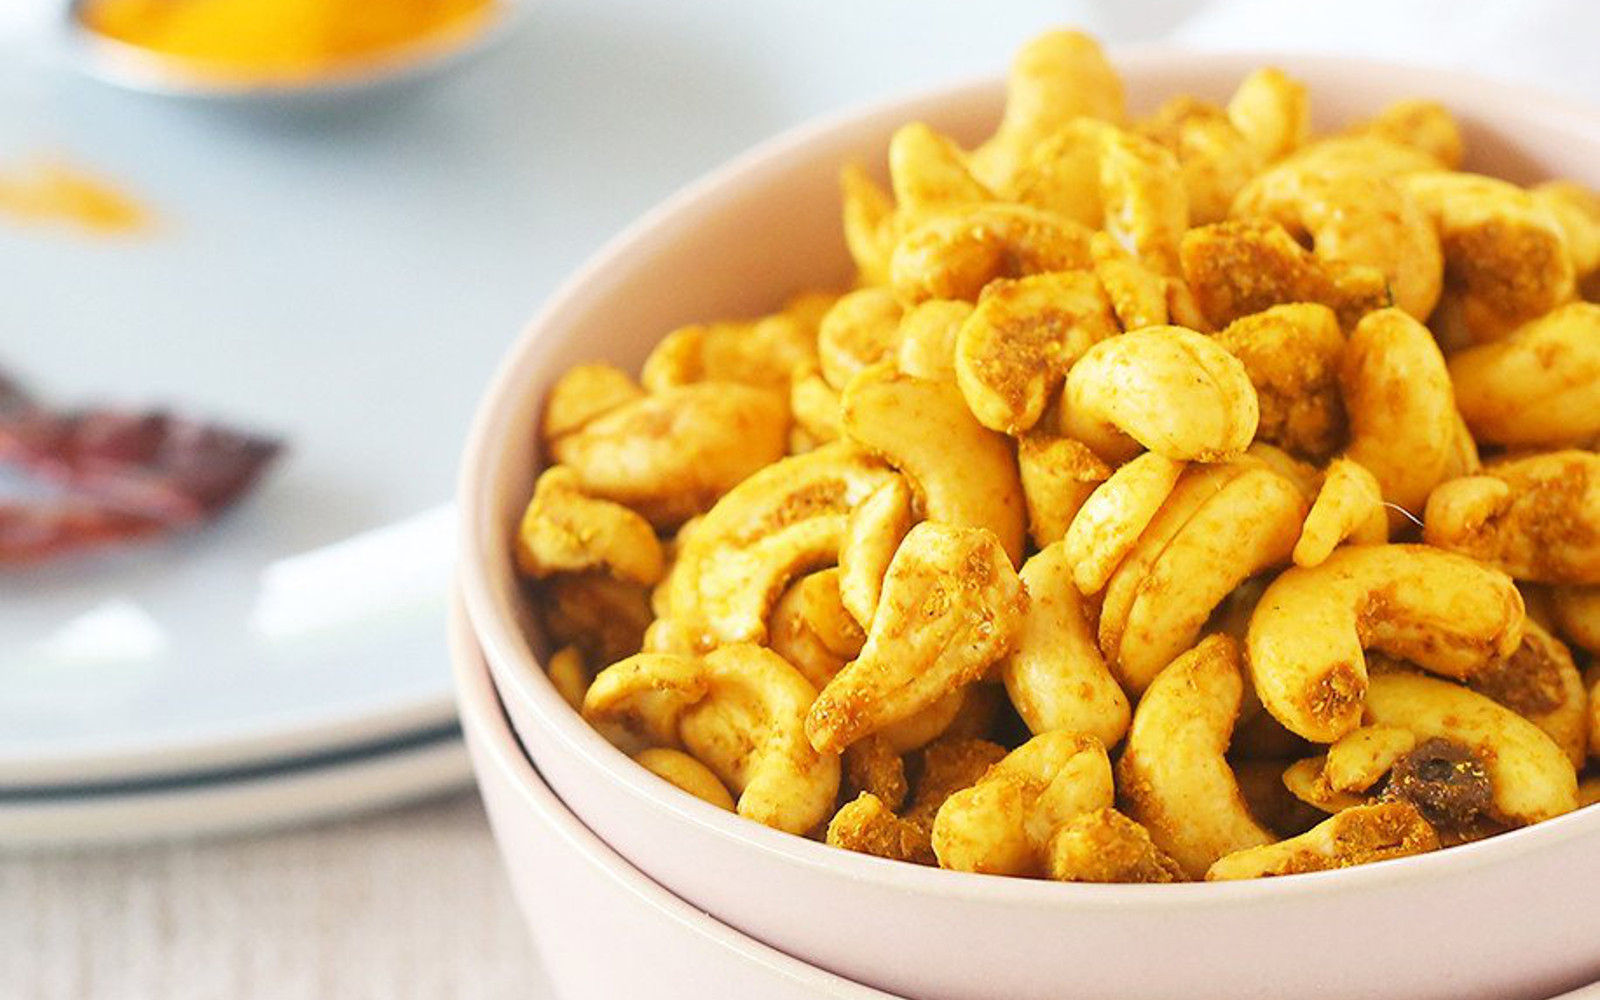 Vegan Spicy Golden Turmeric Cashews